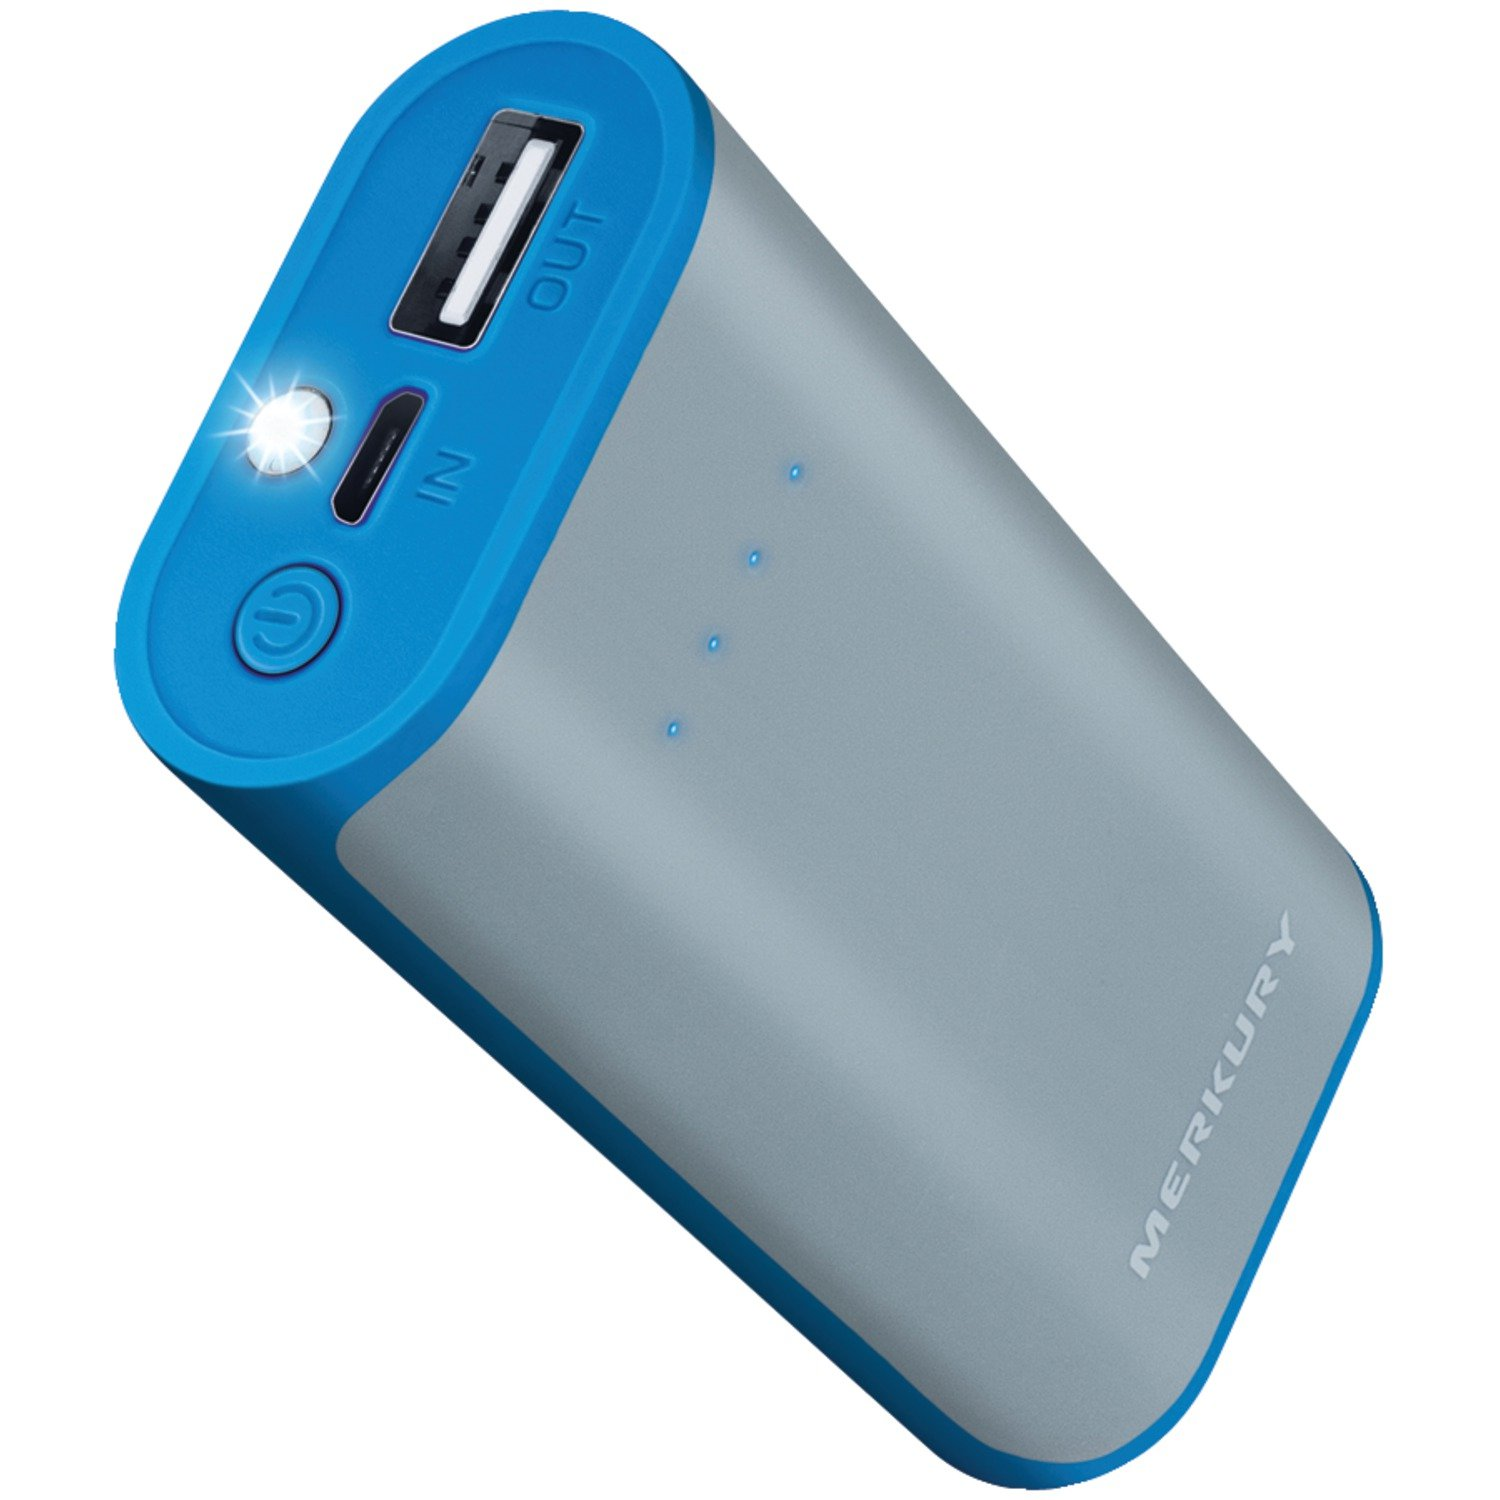 Merkury Mi-pb420-400 4,000mah Rubberized 2-tone Power Bank (gray/blue